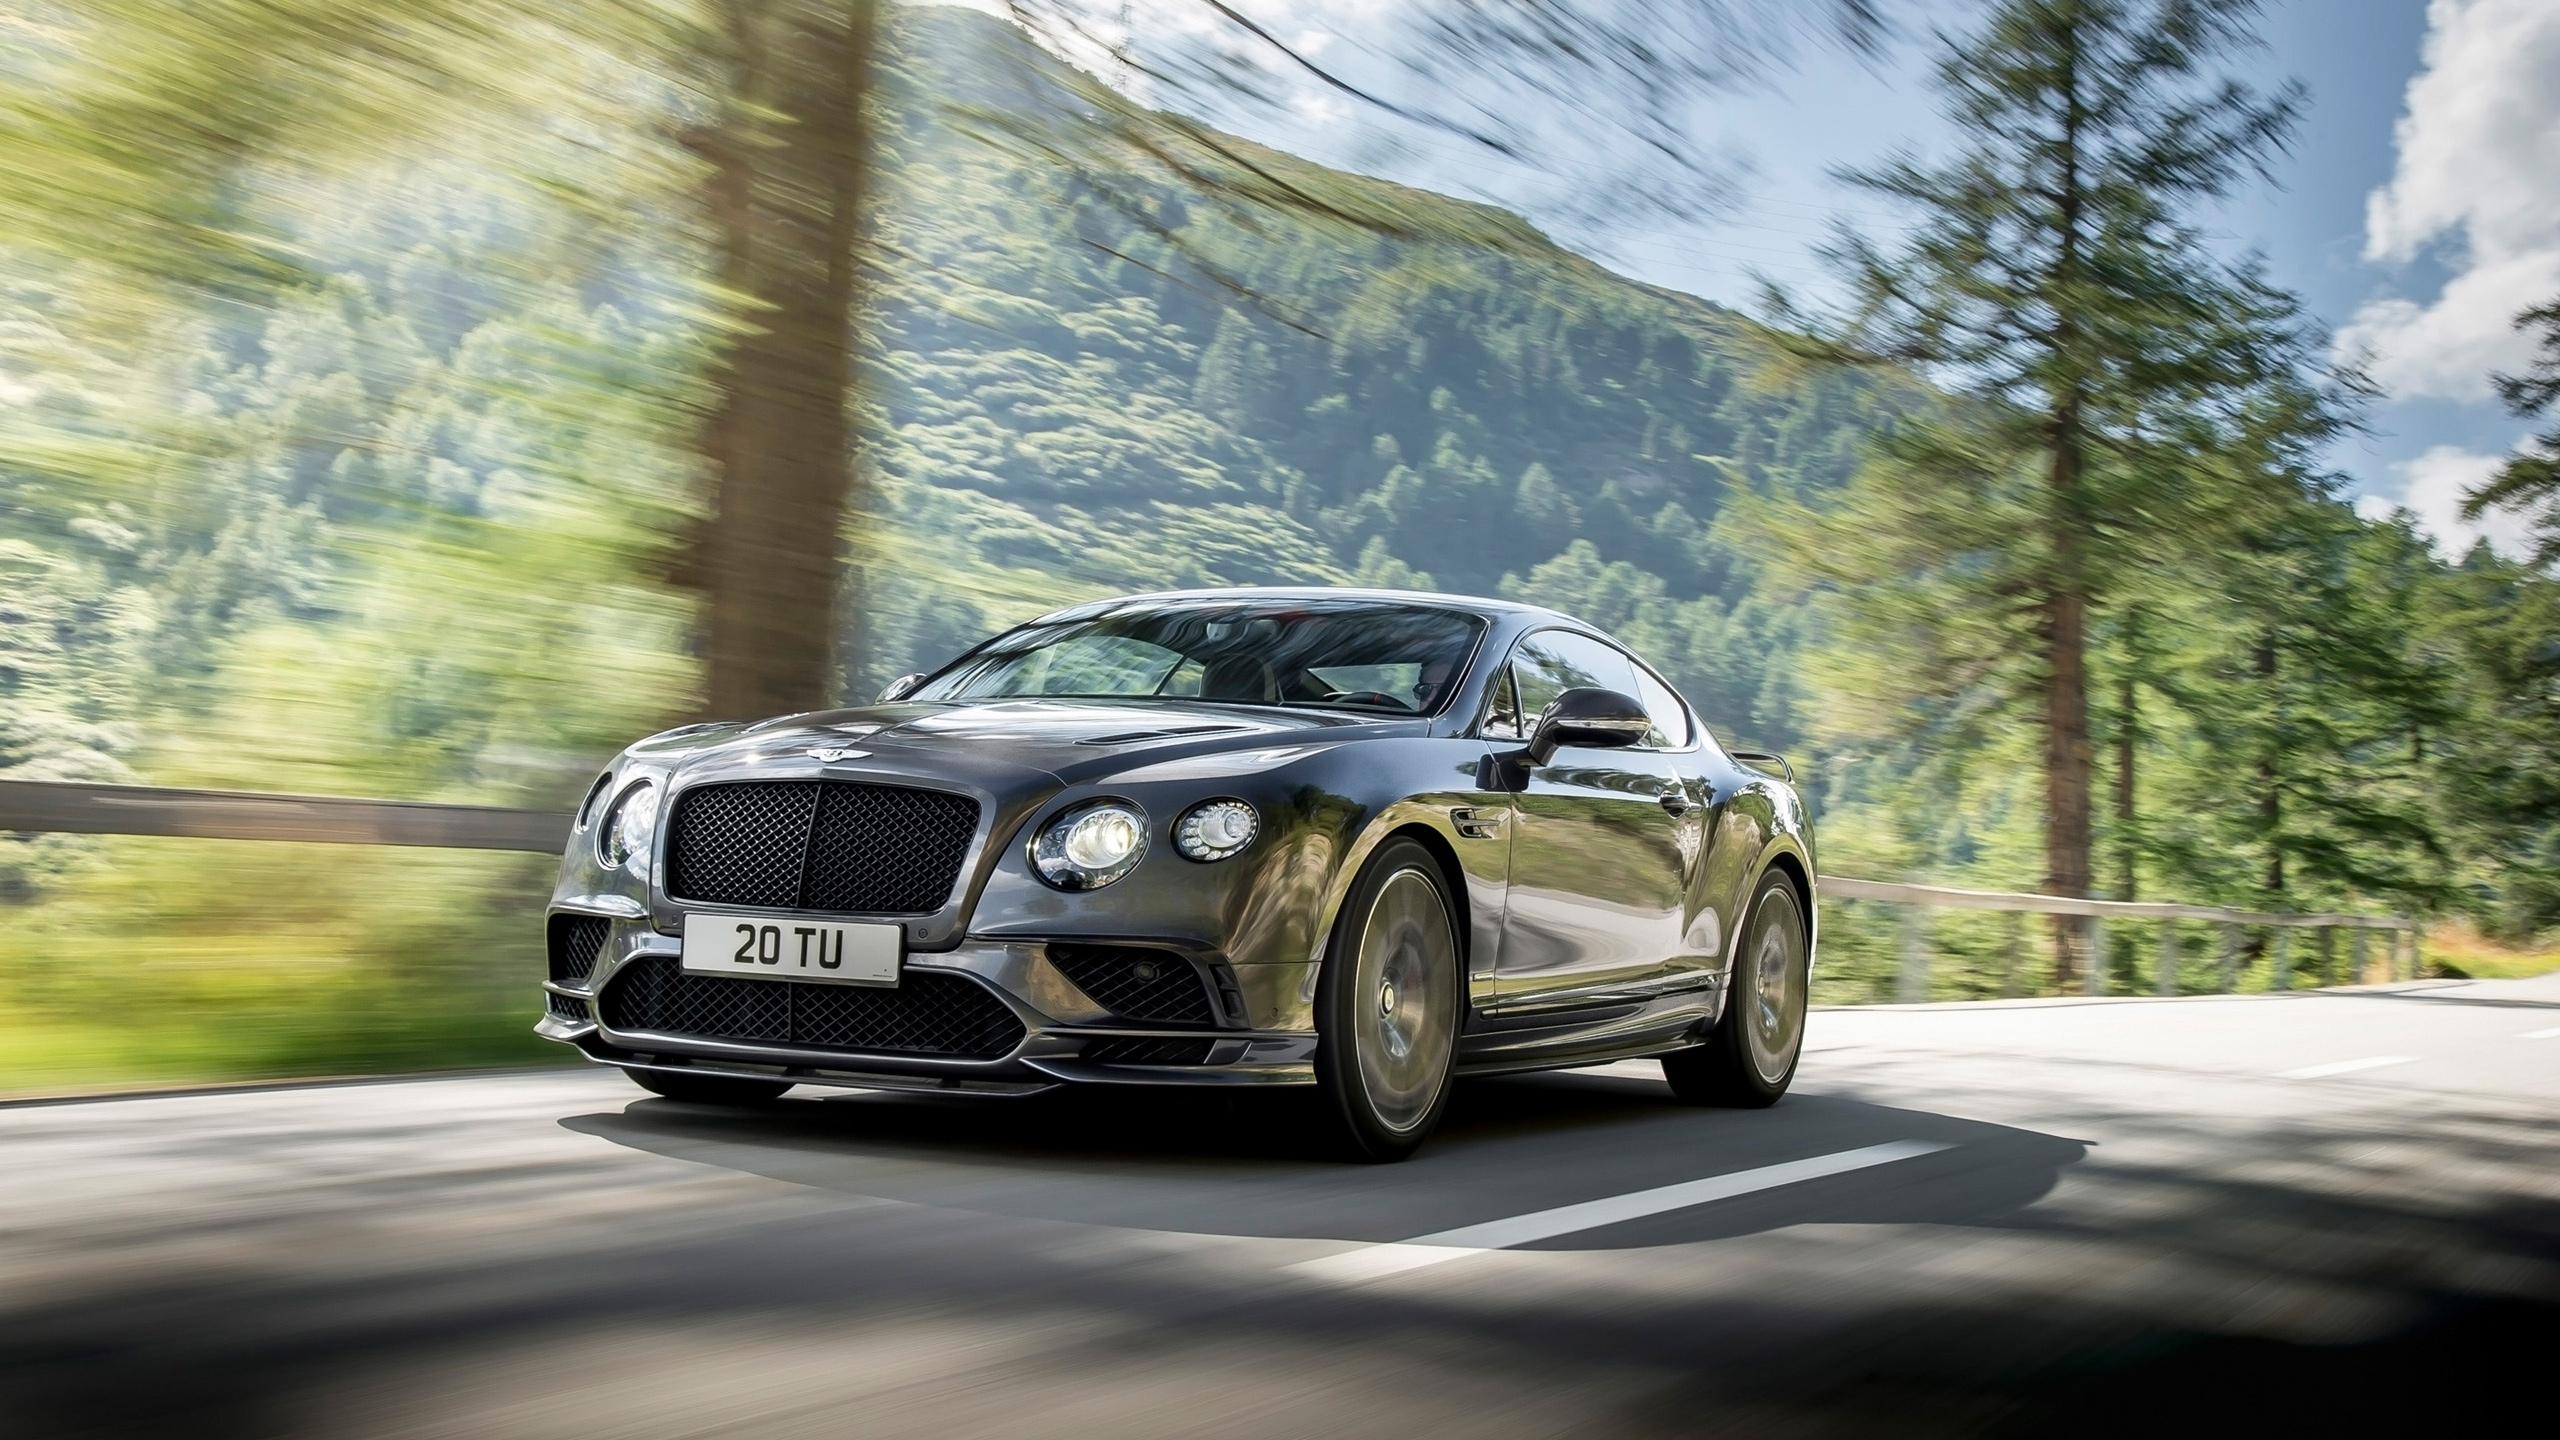 38+] Bentley Continental Wallpapers on